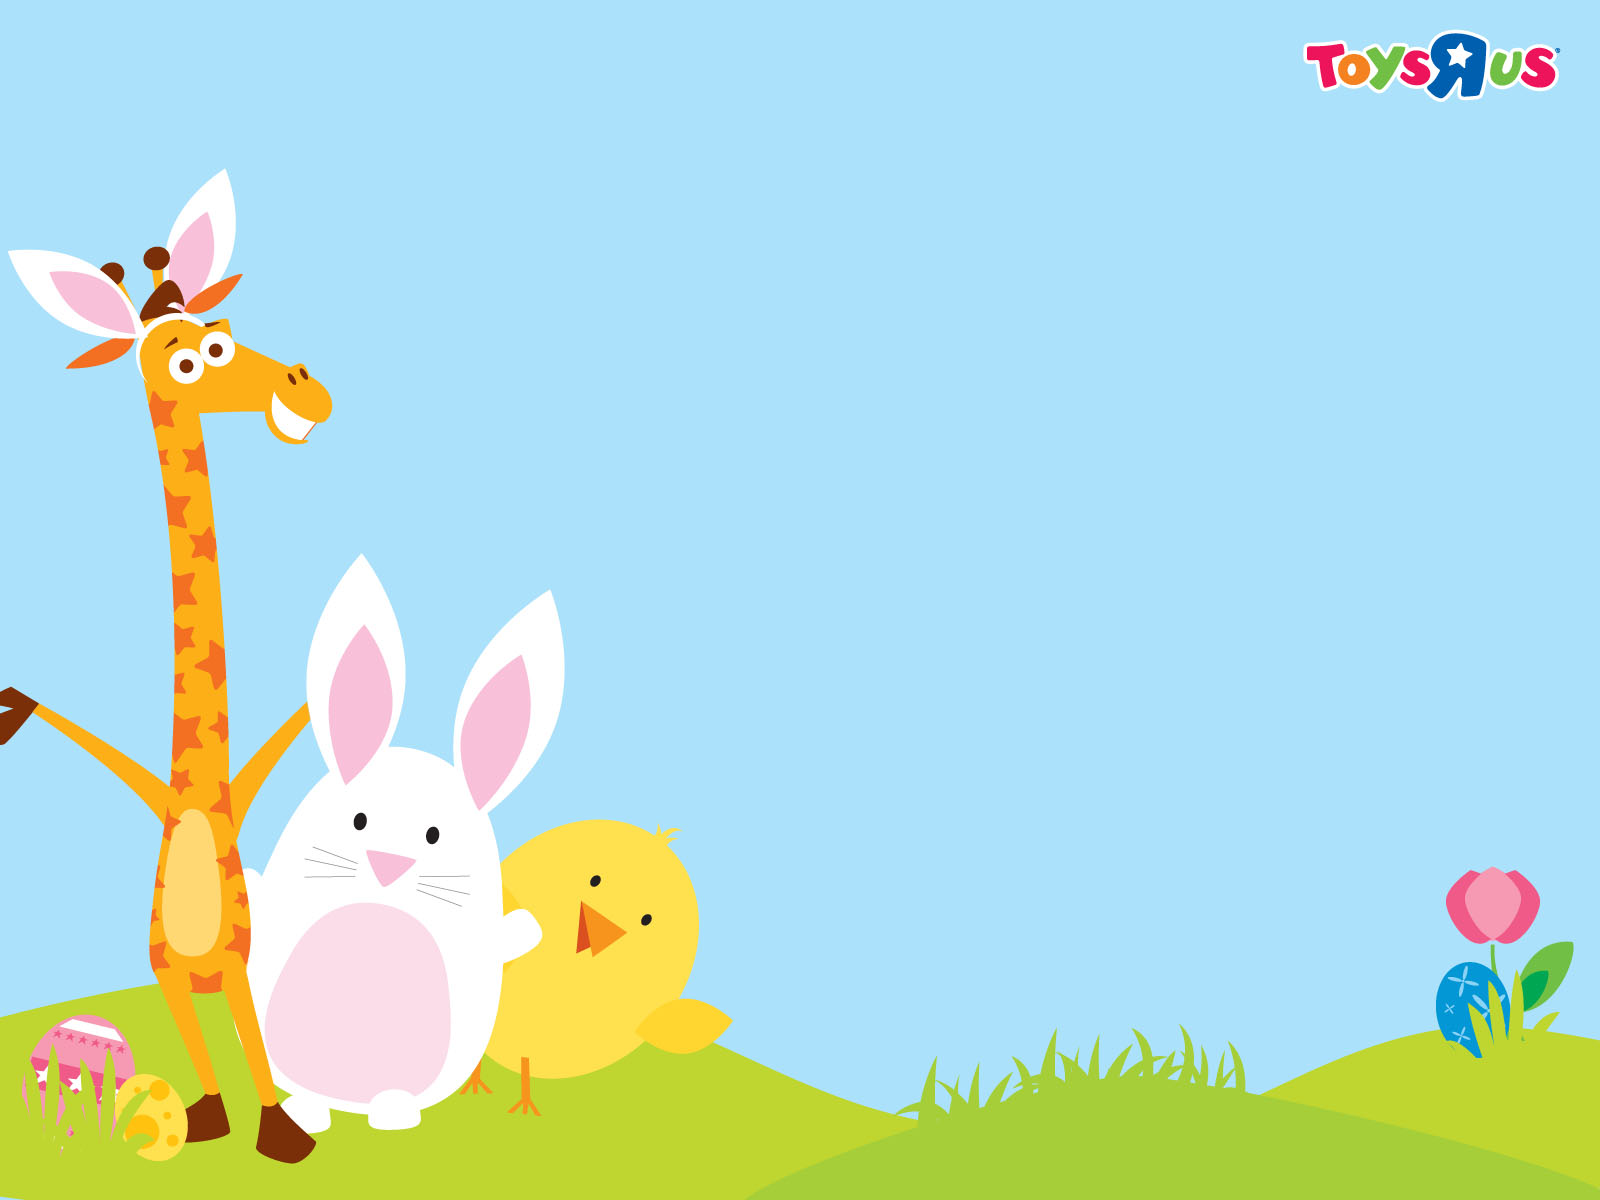 80 wallpaper r us toys r us for boys nerf wallpaper beautiful scandinavia wallpaper entitled toys r us disney easter desktop wallpaper negle Choice Image